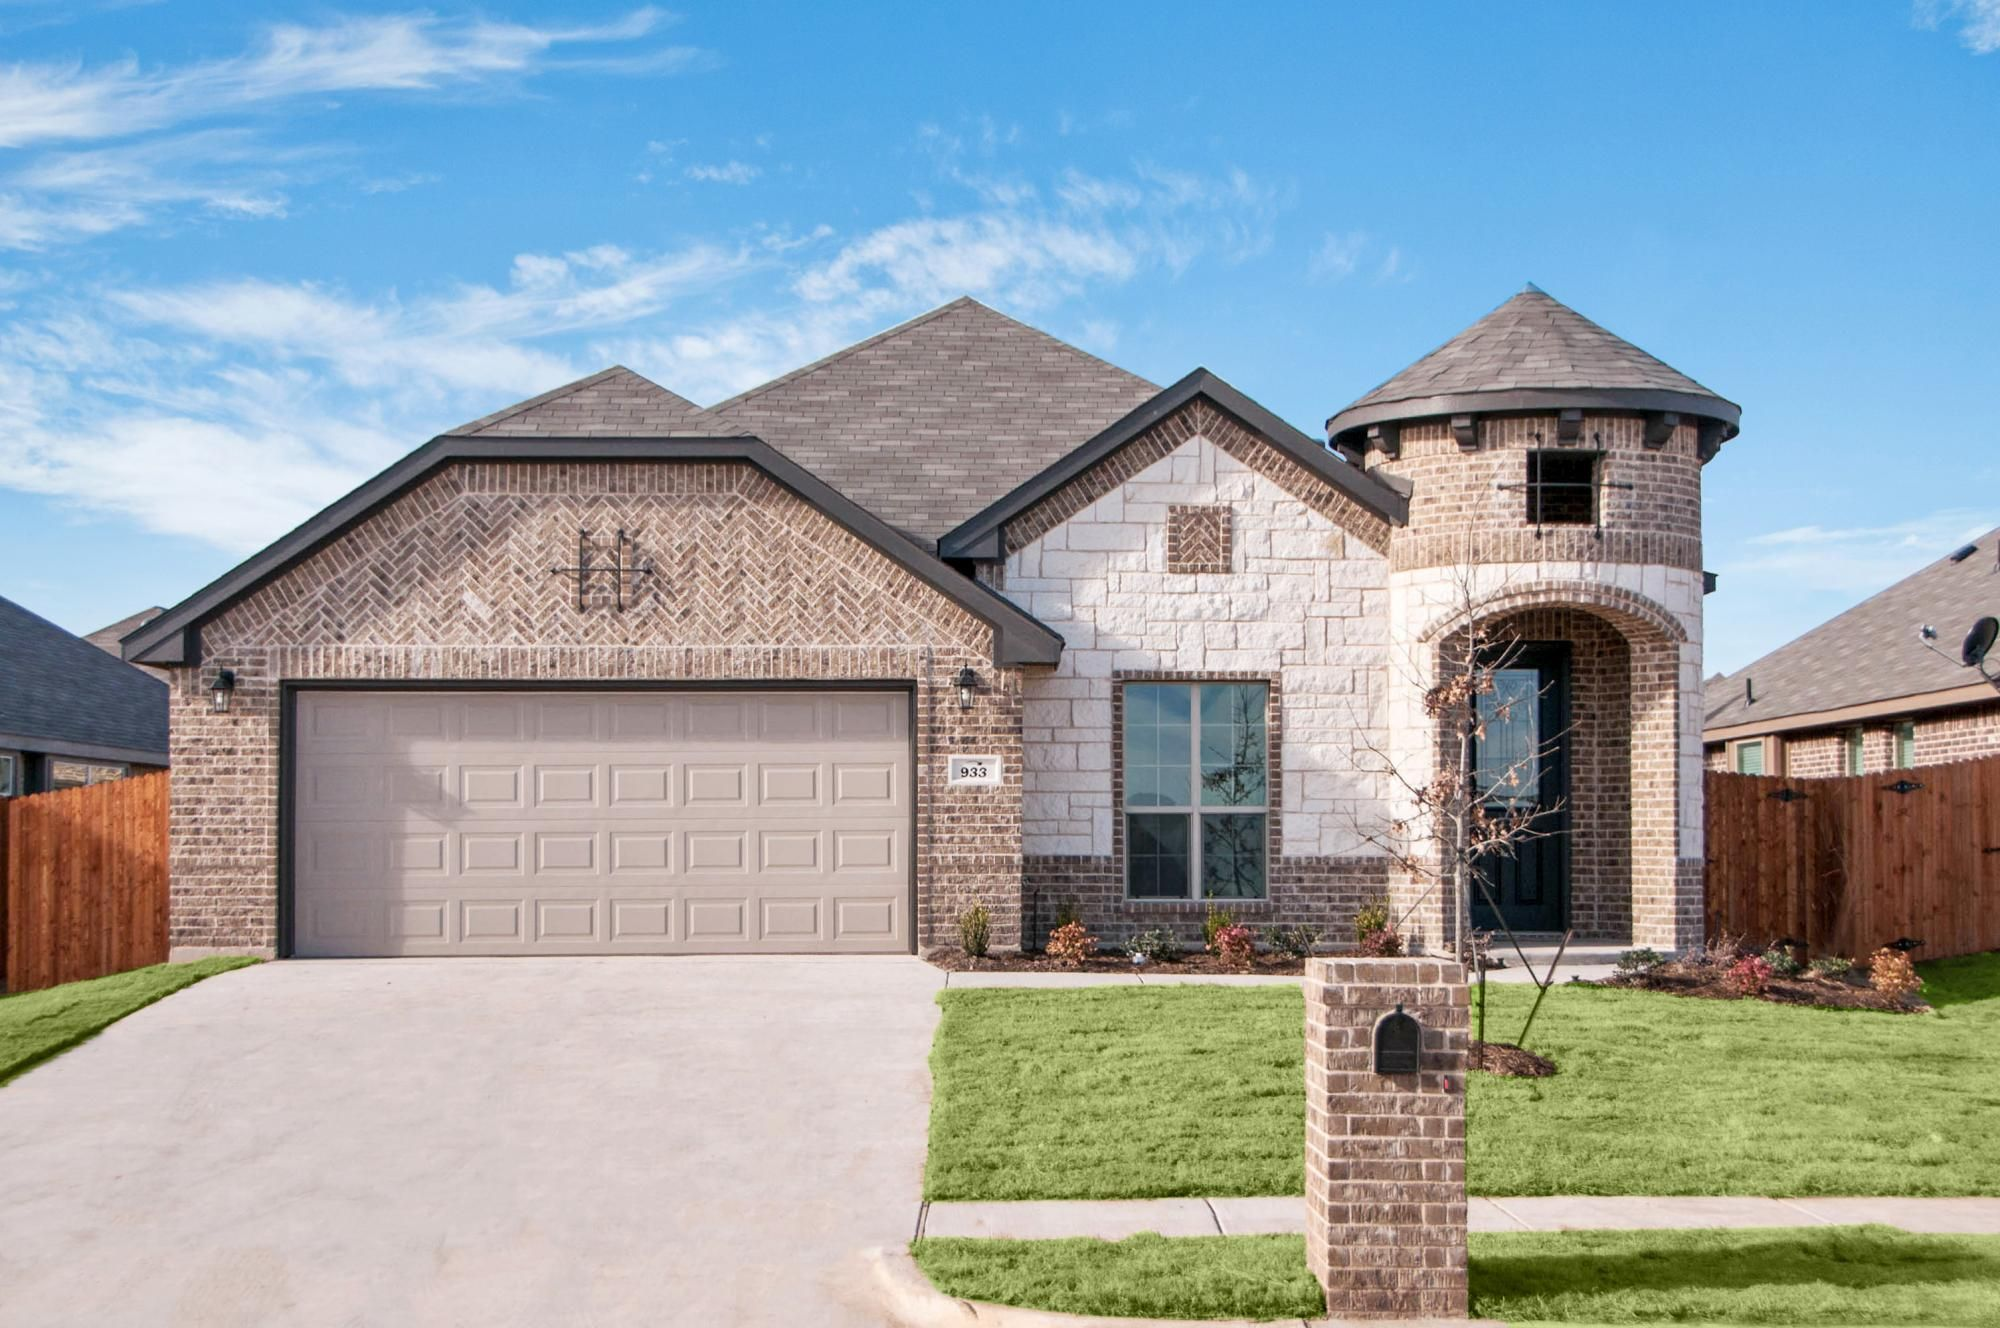 Brown Brick With Dark Trim And White Stone House Exterior Brown